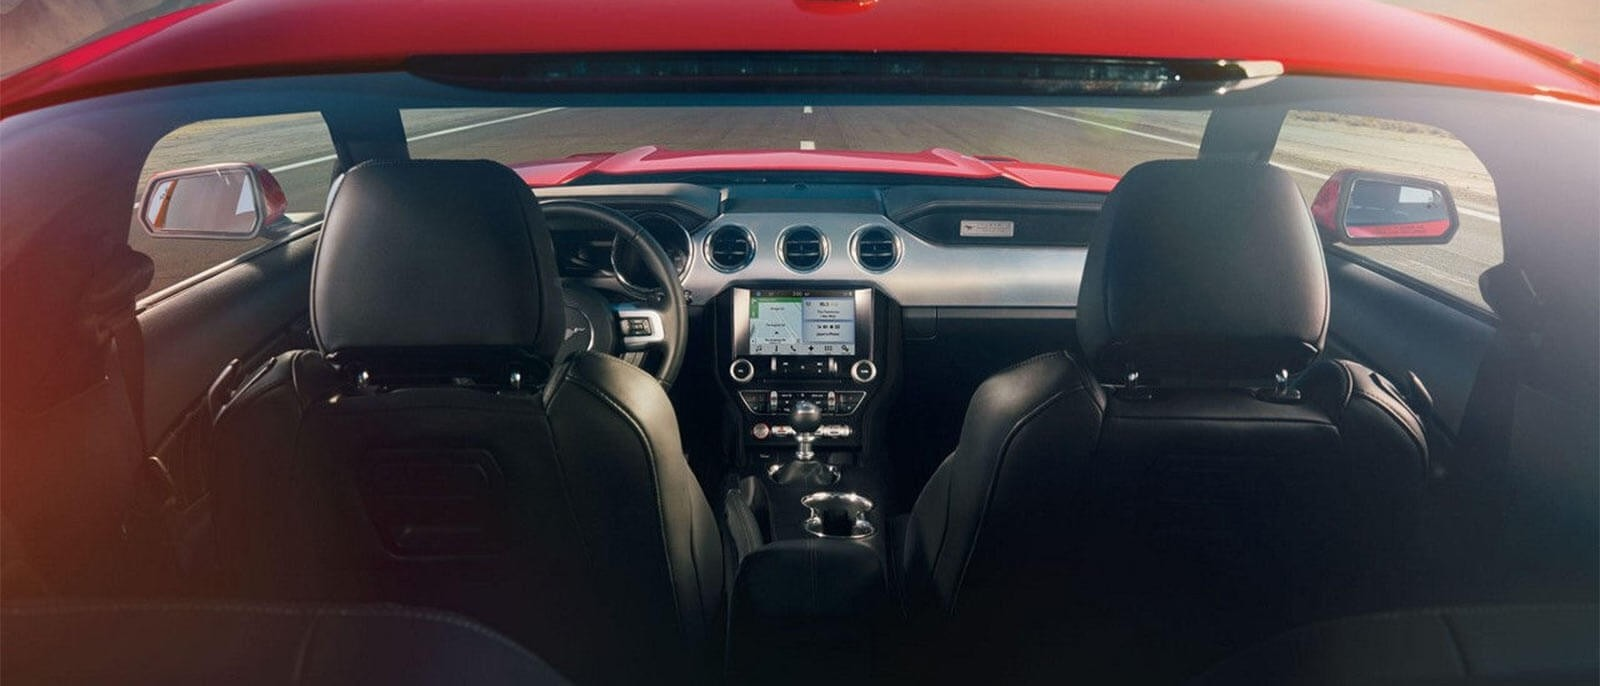 2017 Ford Mustang GT Premium Fastback Interior